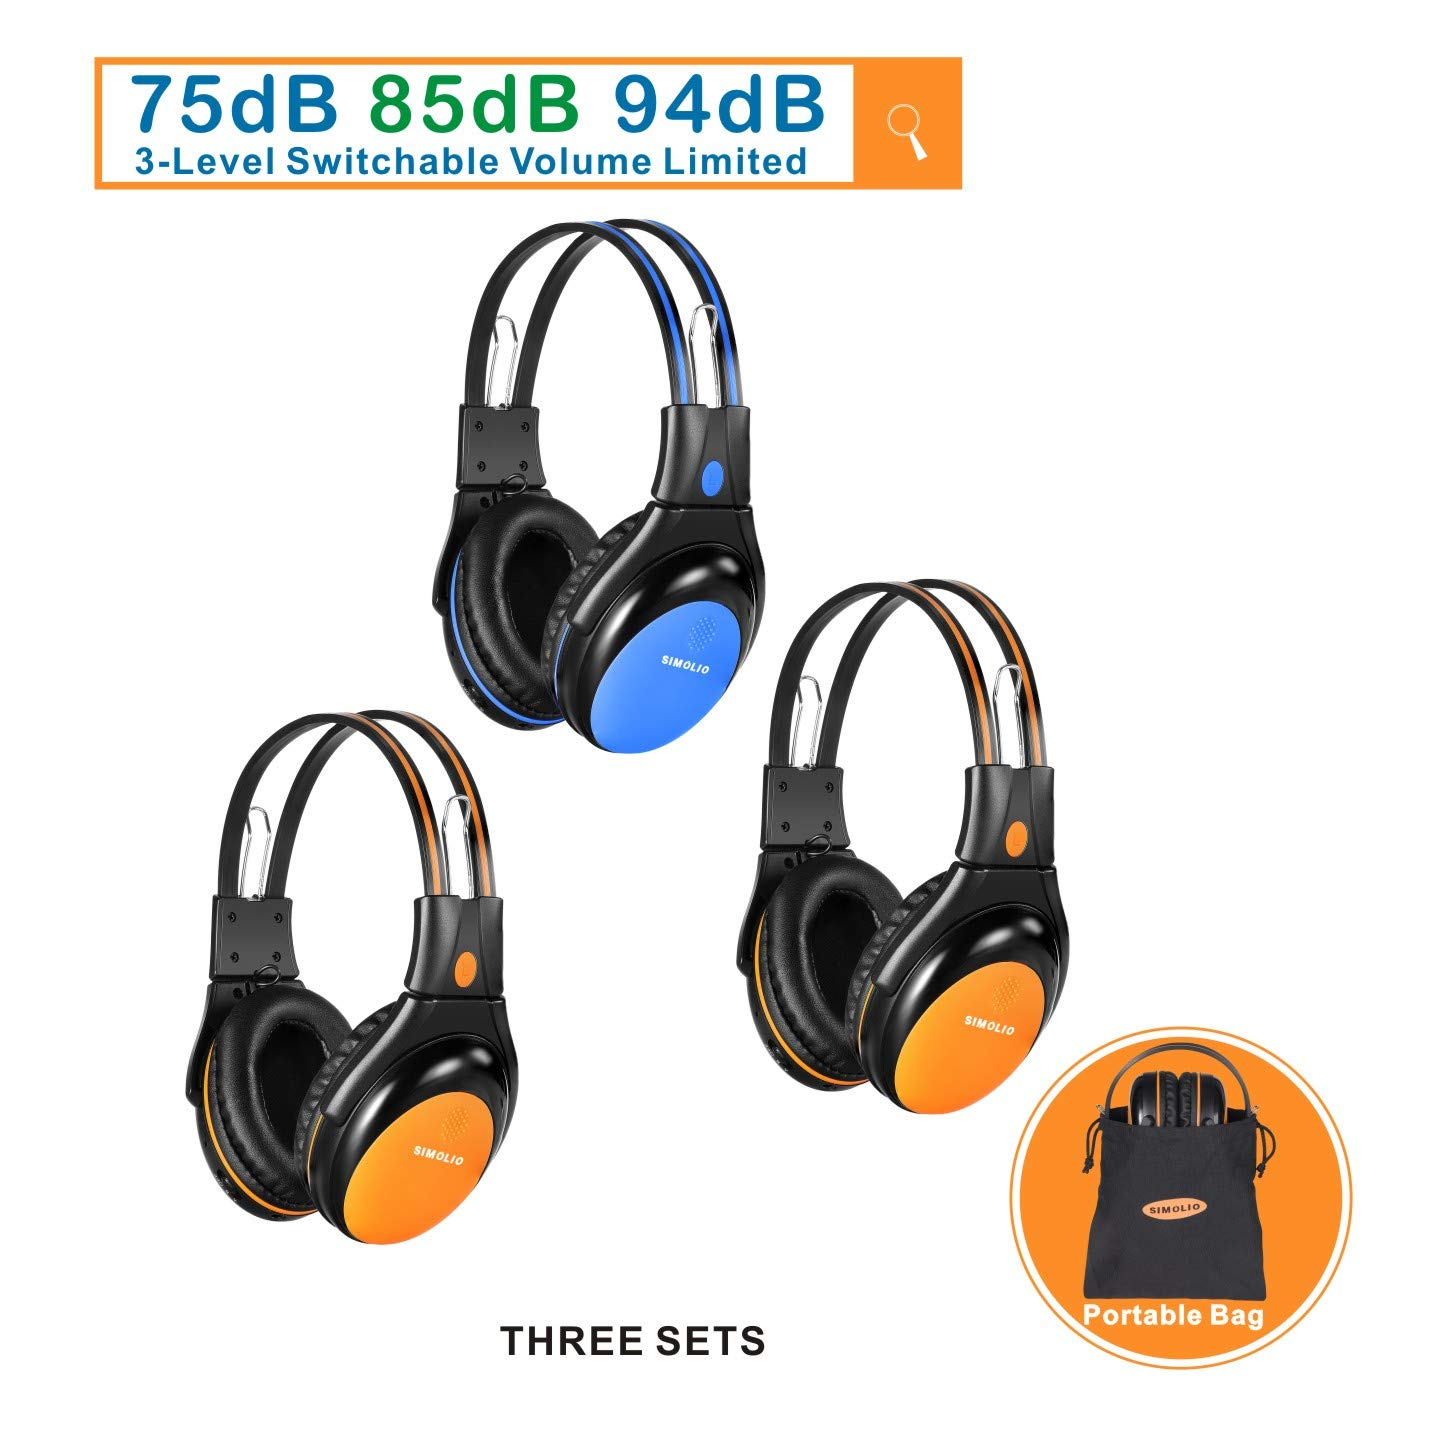 3 Pack of Car Wireless Headphones for Kids with 3 Levels Volume Limited, Infrared Wireless Car Headsets with Travelling Bag for Universal Car DVD, 2 Channel IR Headphones, Blue and Orange by SIMOLIO